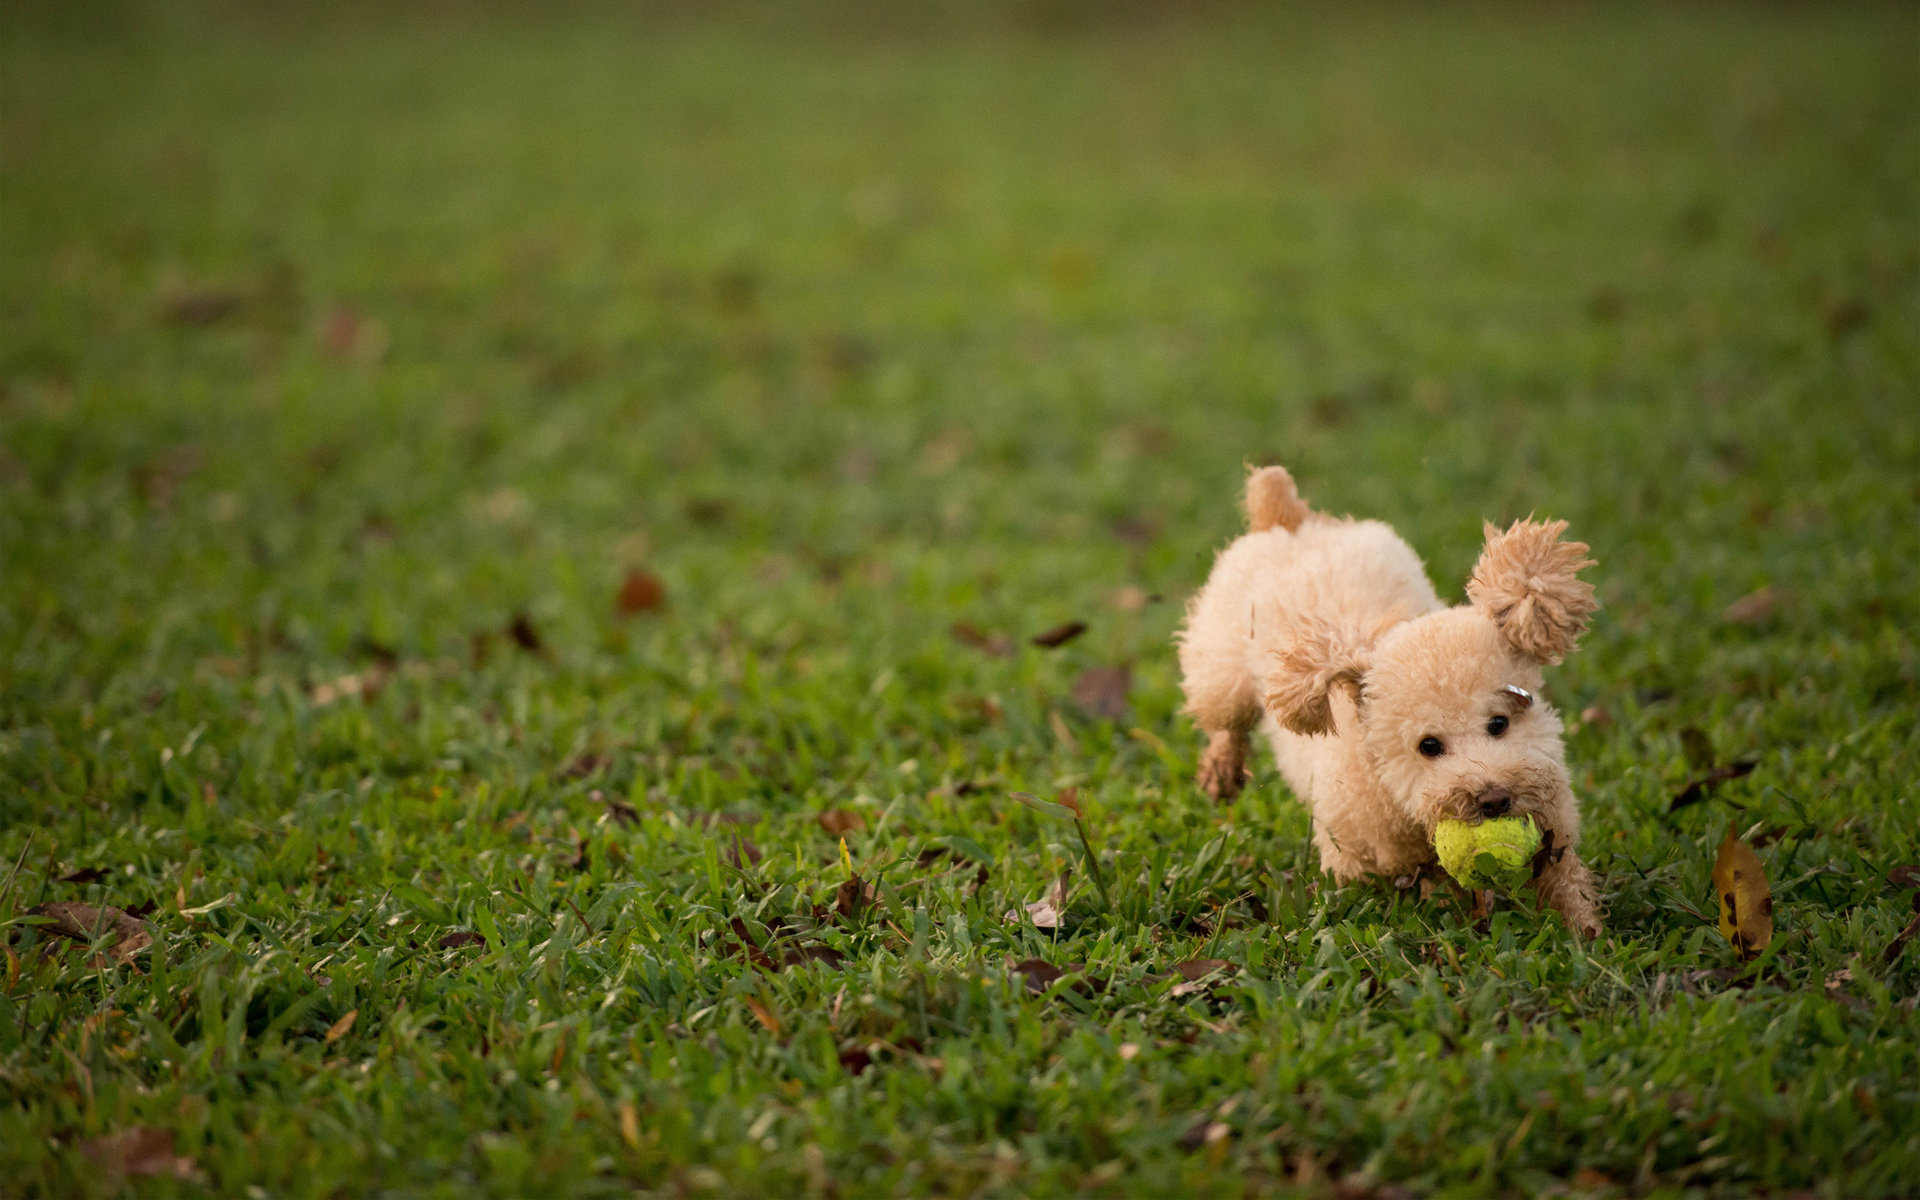 Download hd 1920x1200 Poodle PC background ID:145044 for free